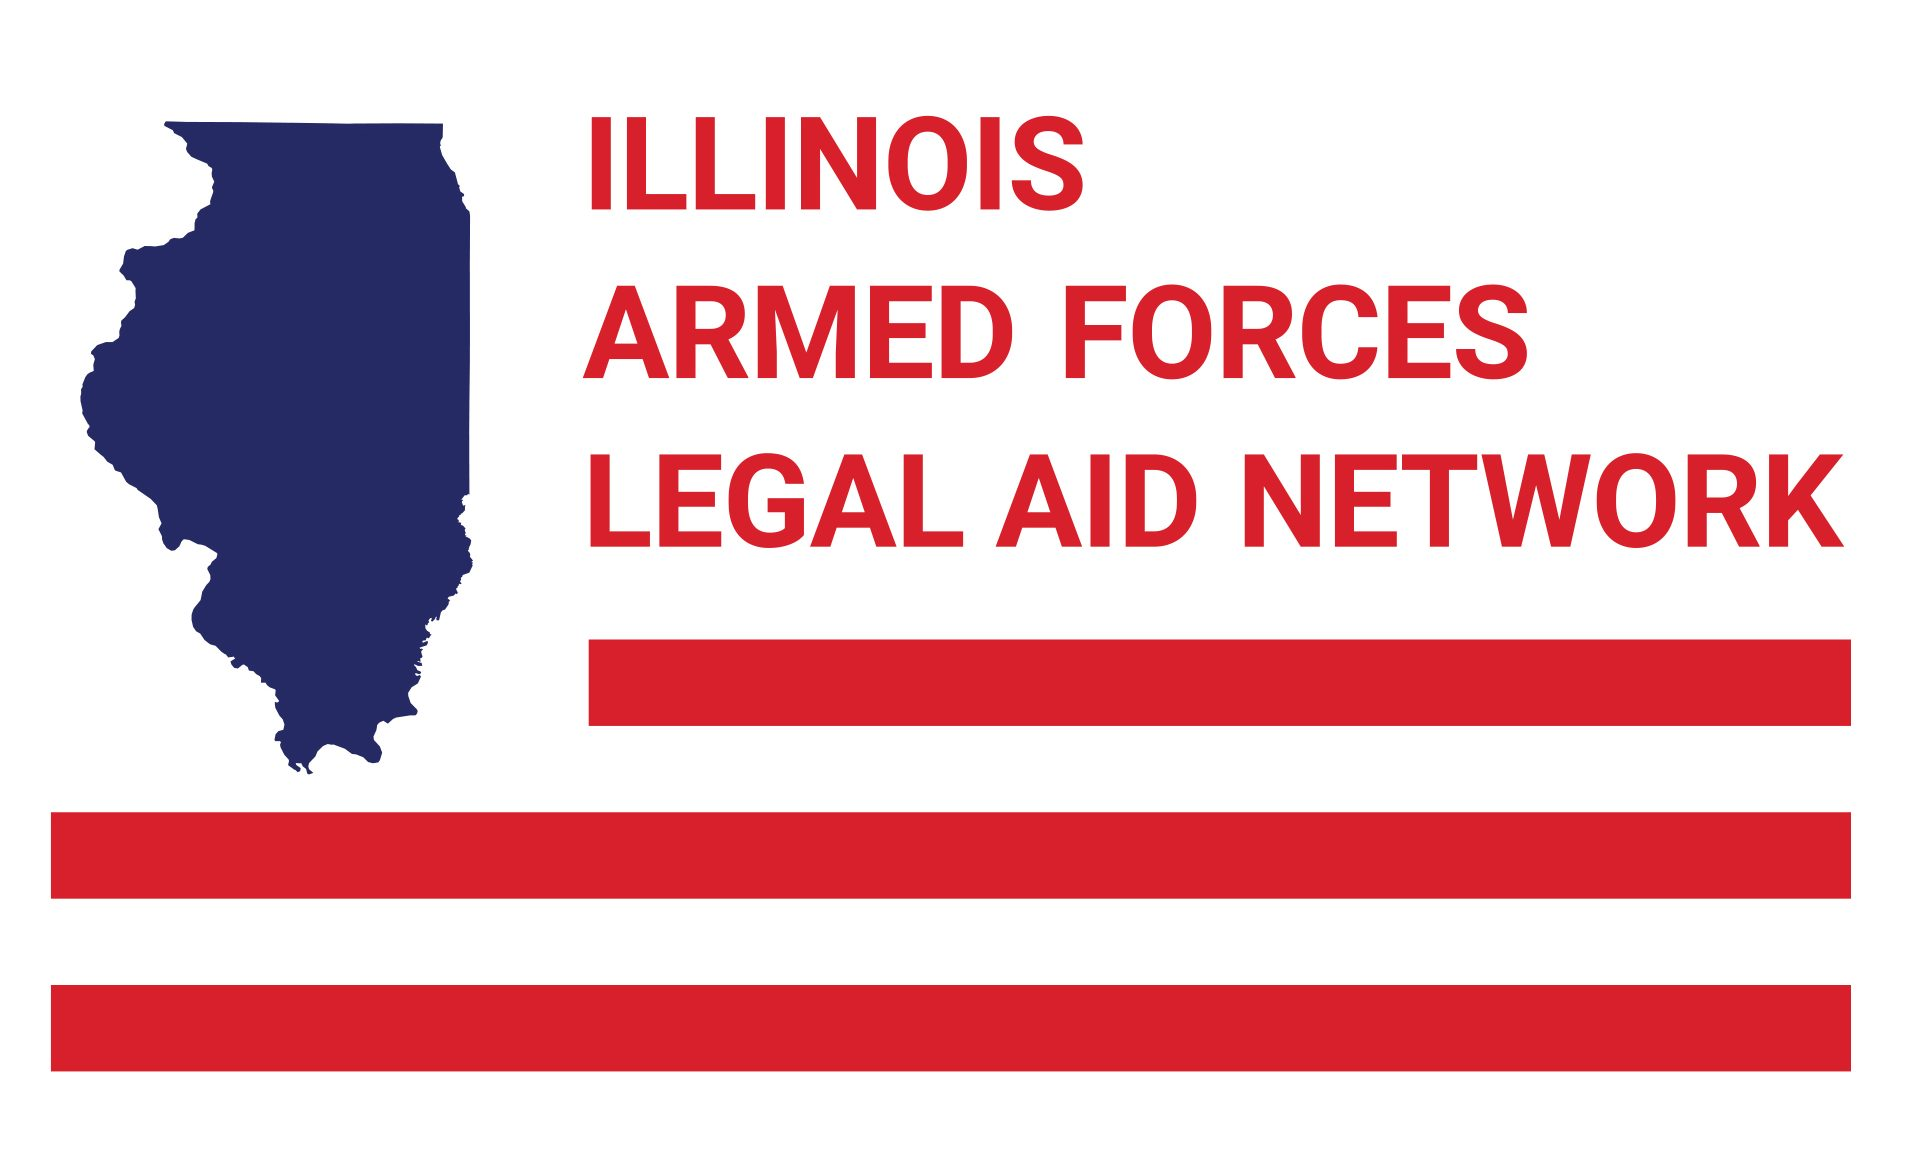 Illinois Armed Forces Legal Aid Network